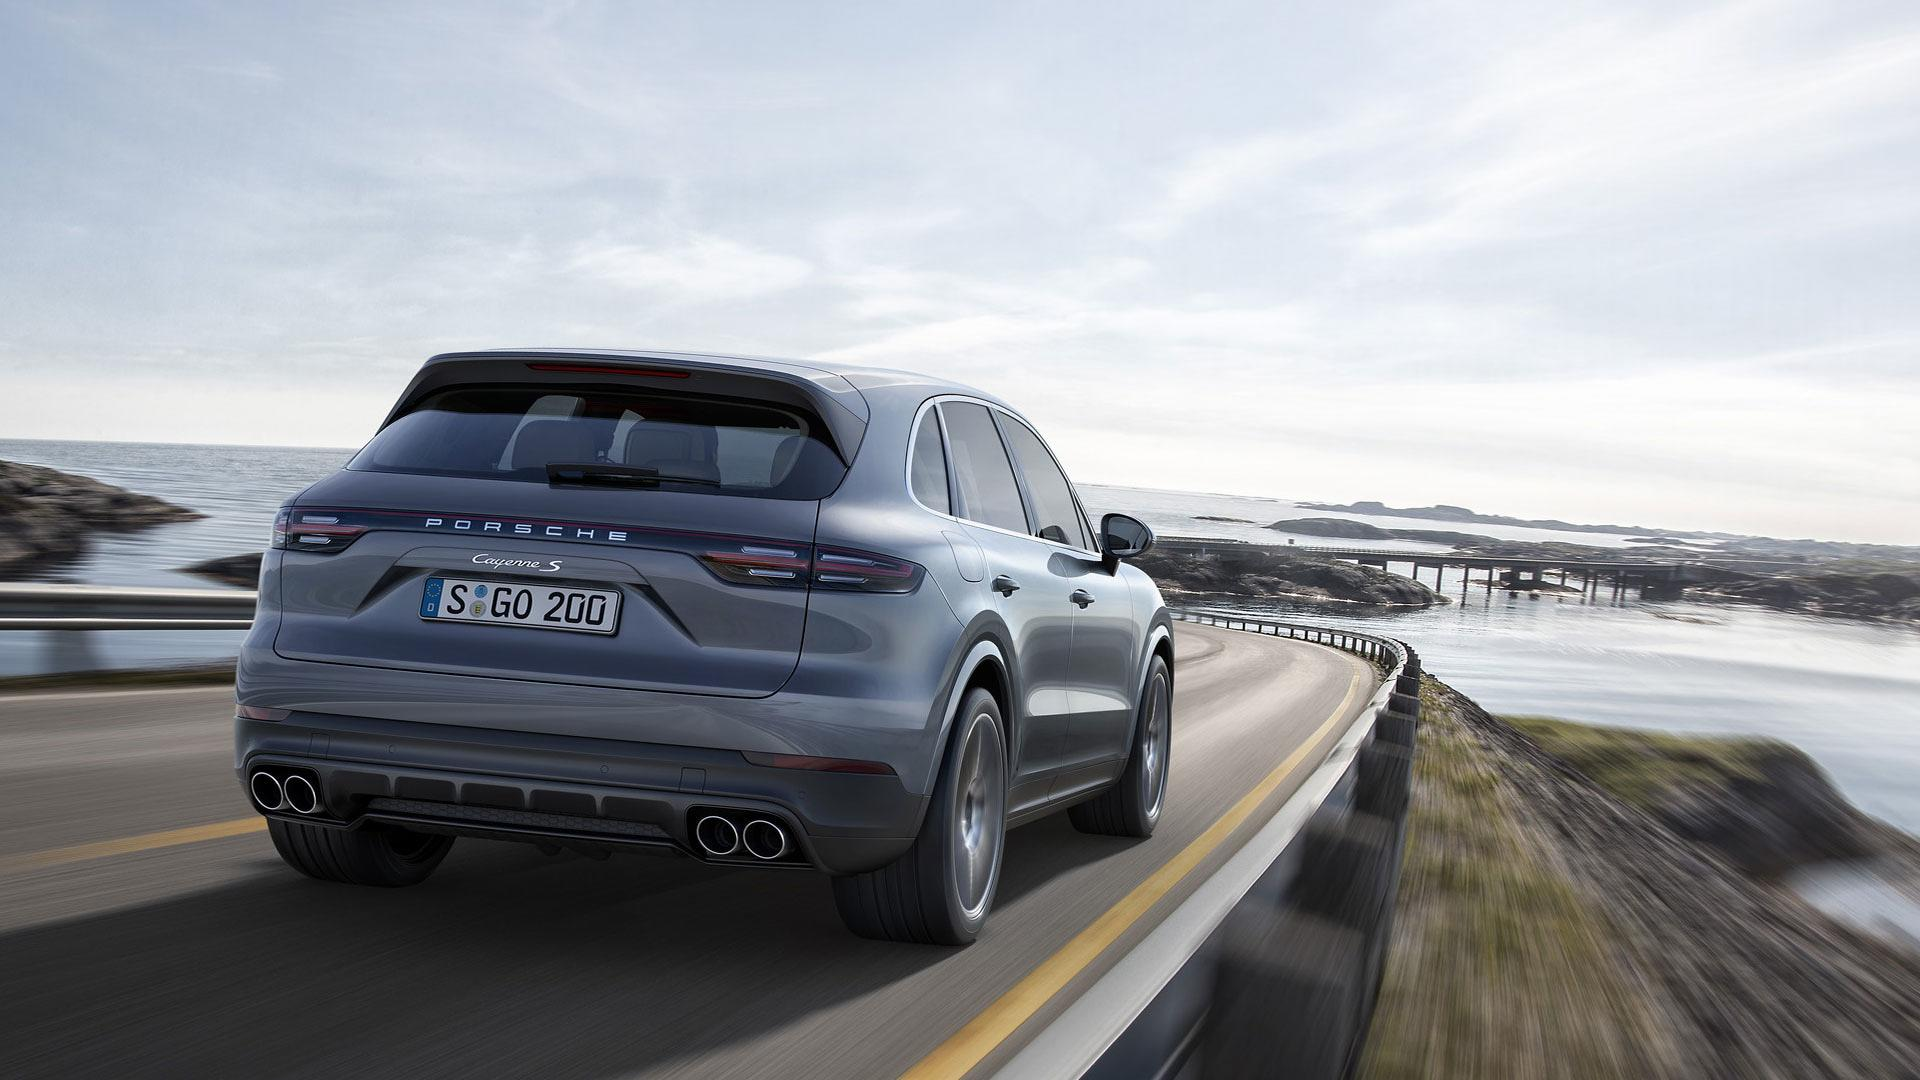 The 2019 cayenne and cayenne s models are available to order with a base msrp of 65 700 and 82 900 respectively excluding the 1 050 delivery